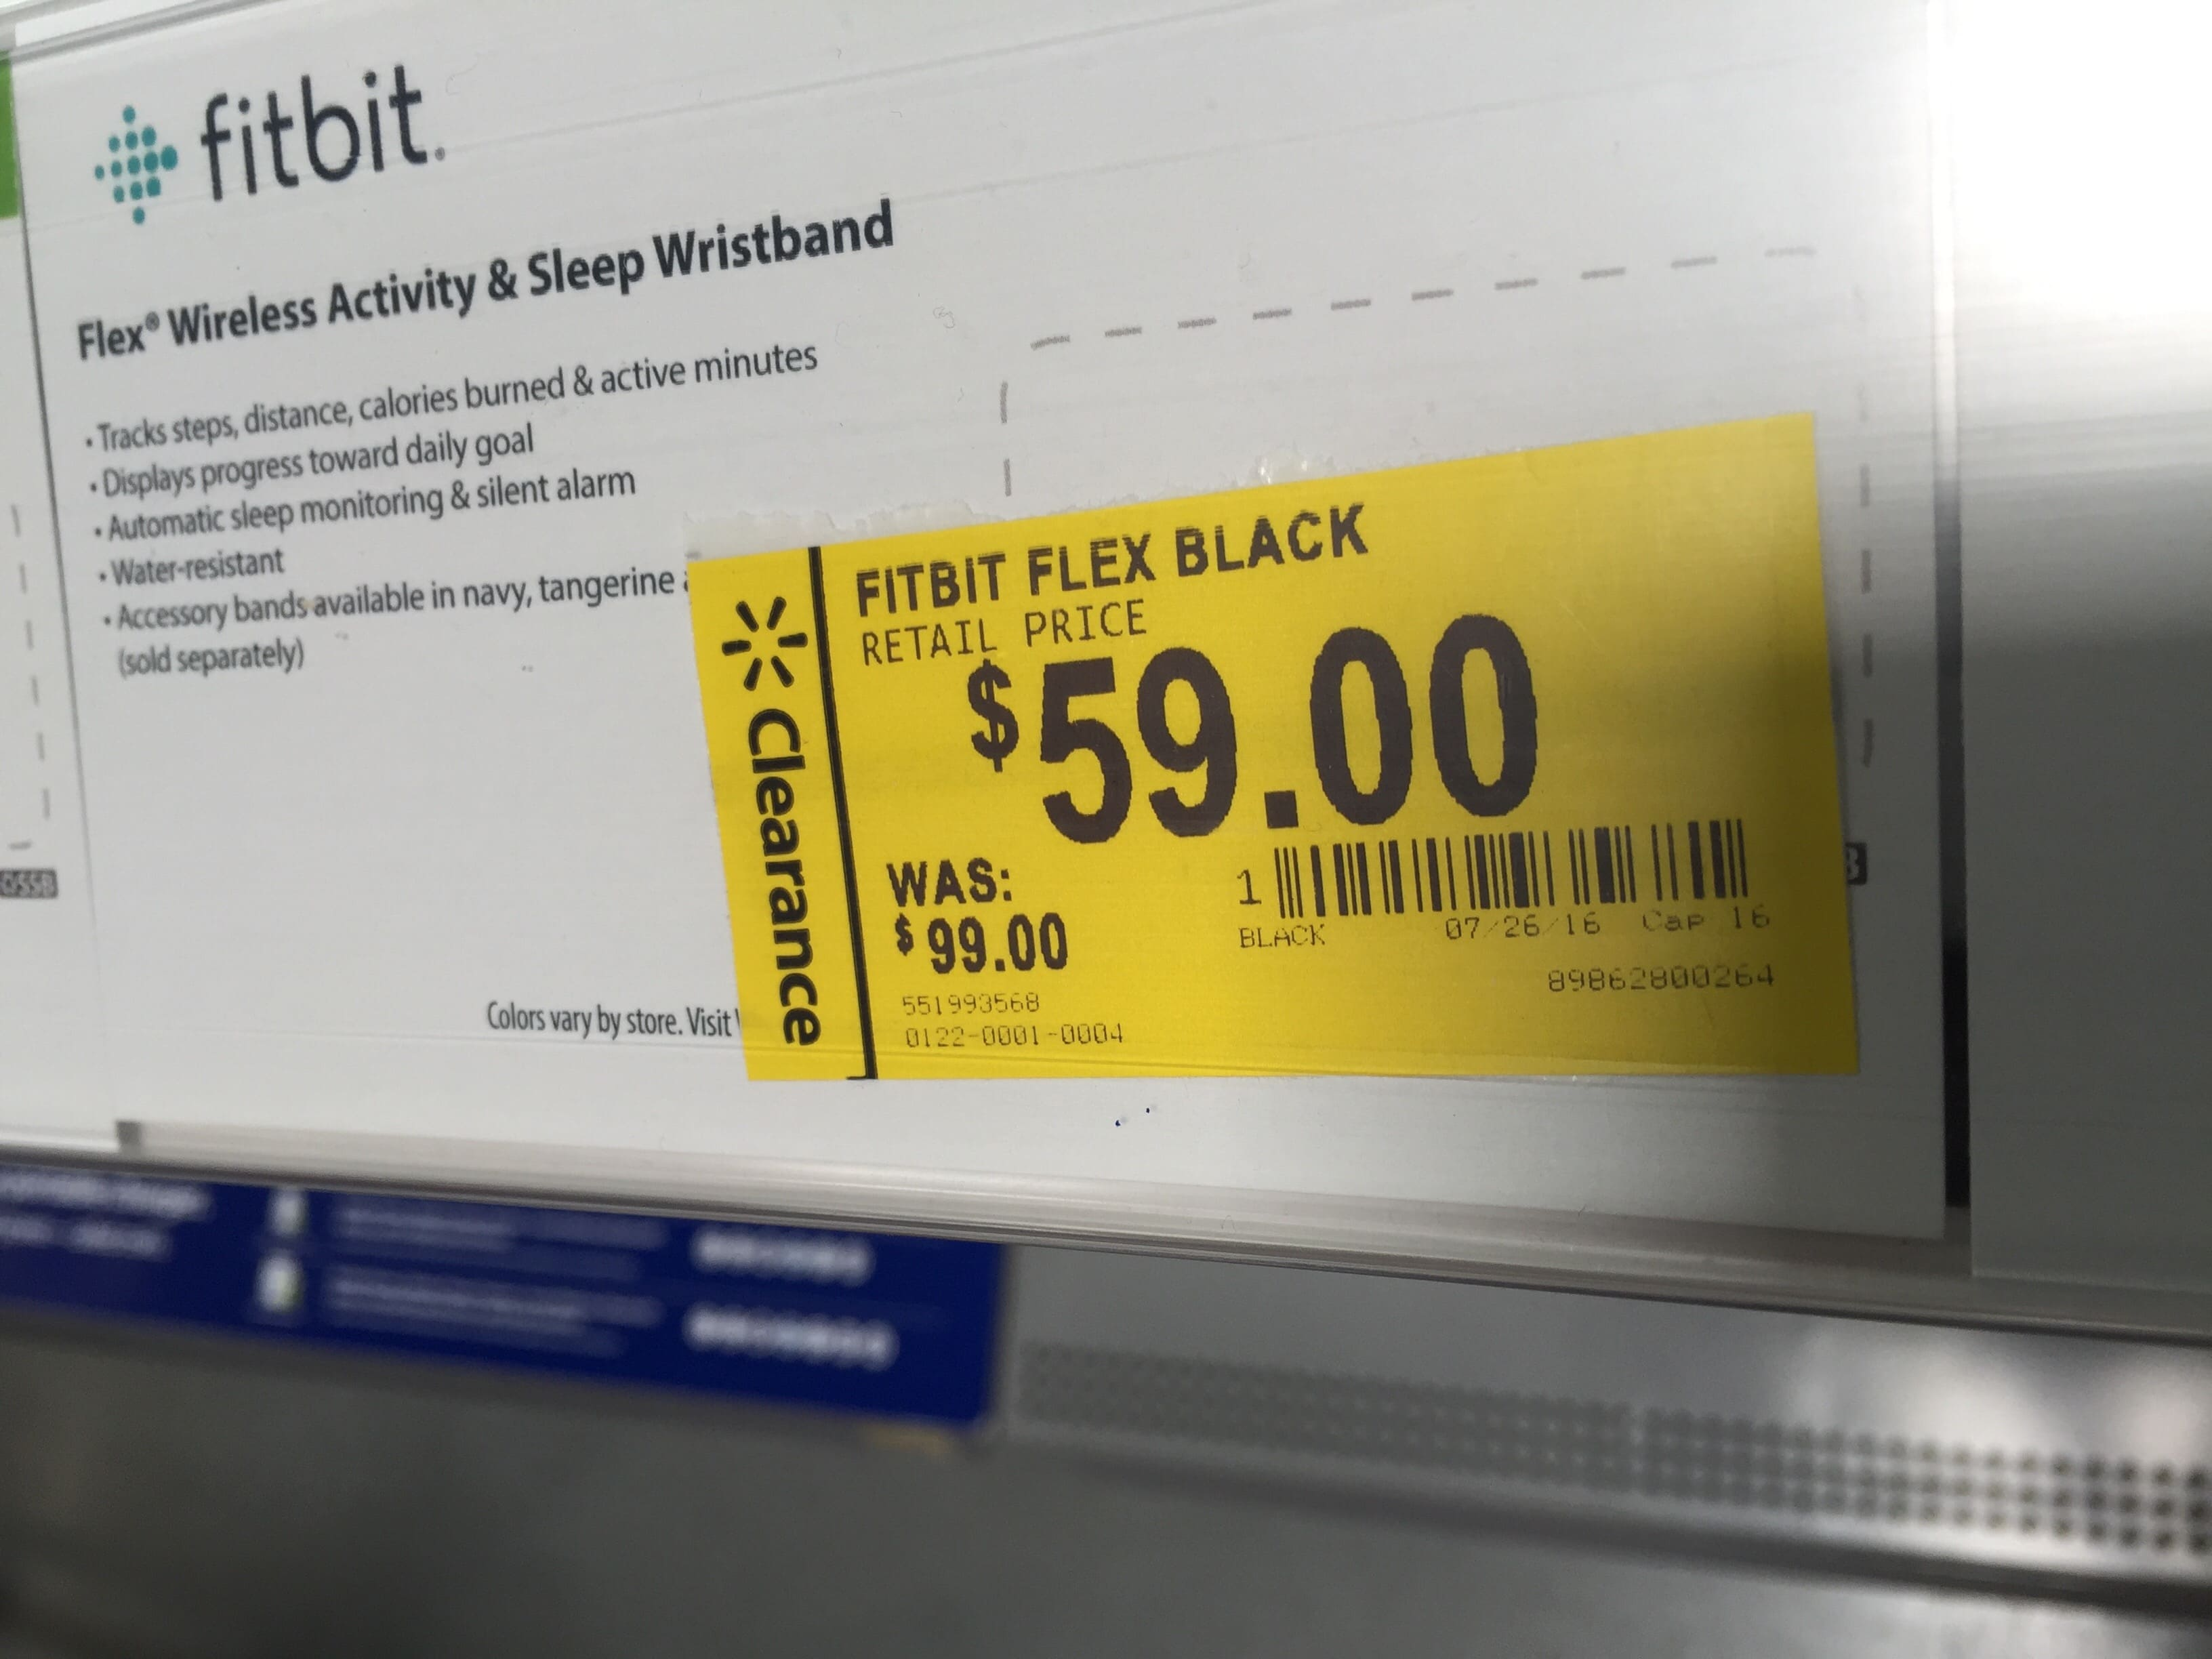 Walmart has new Fitbit flex on clearance for $59 in store.